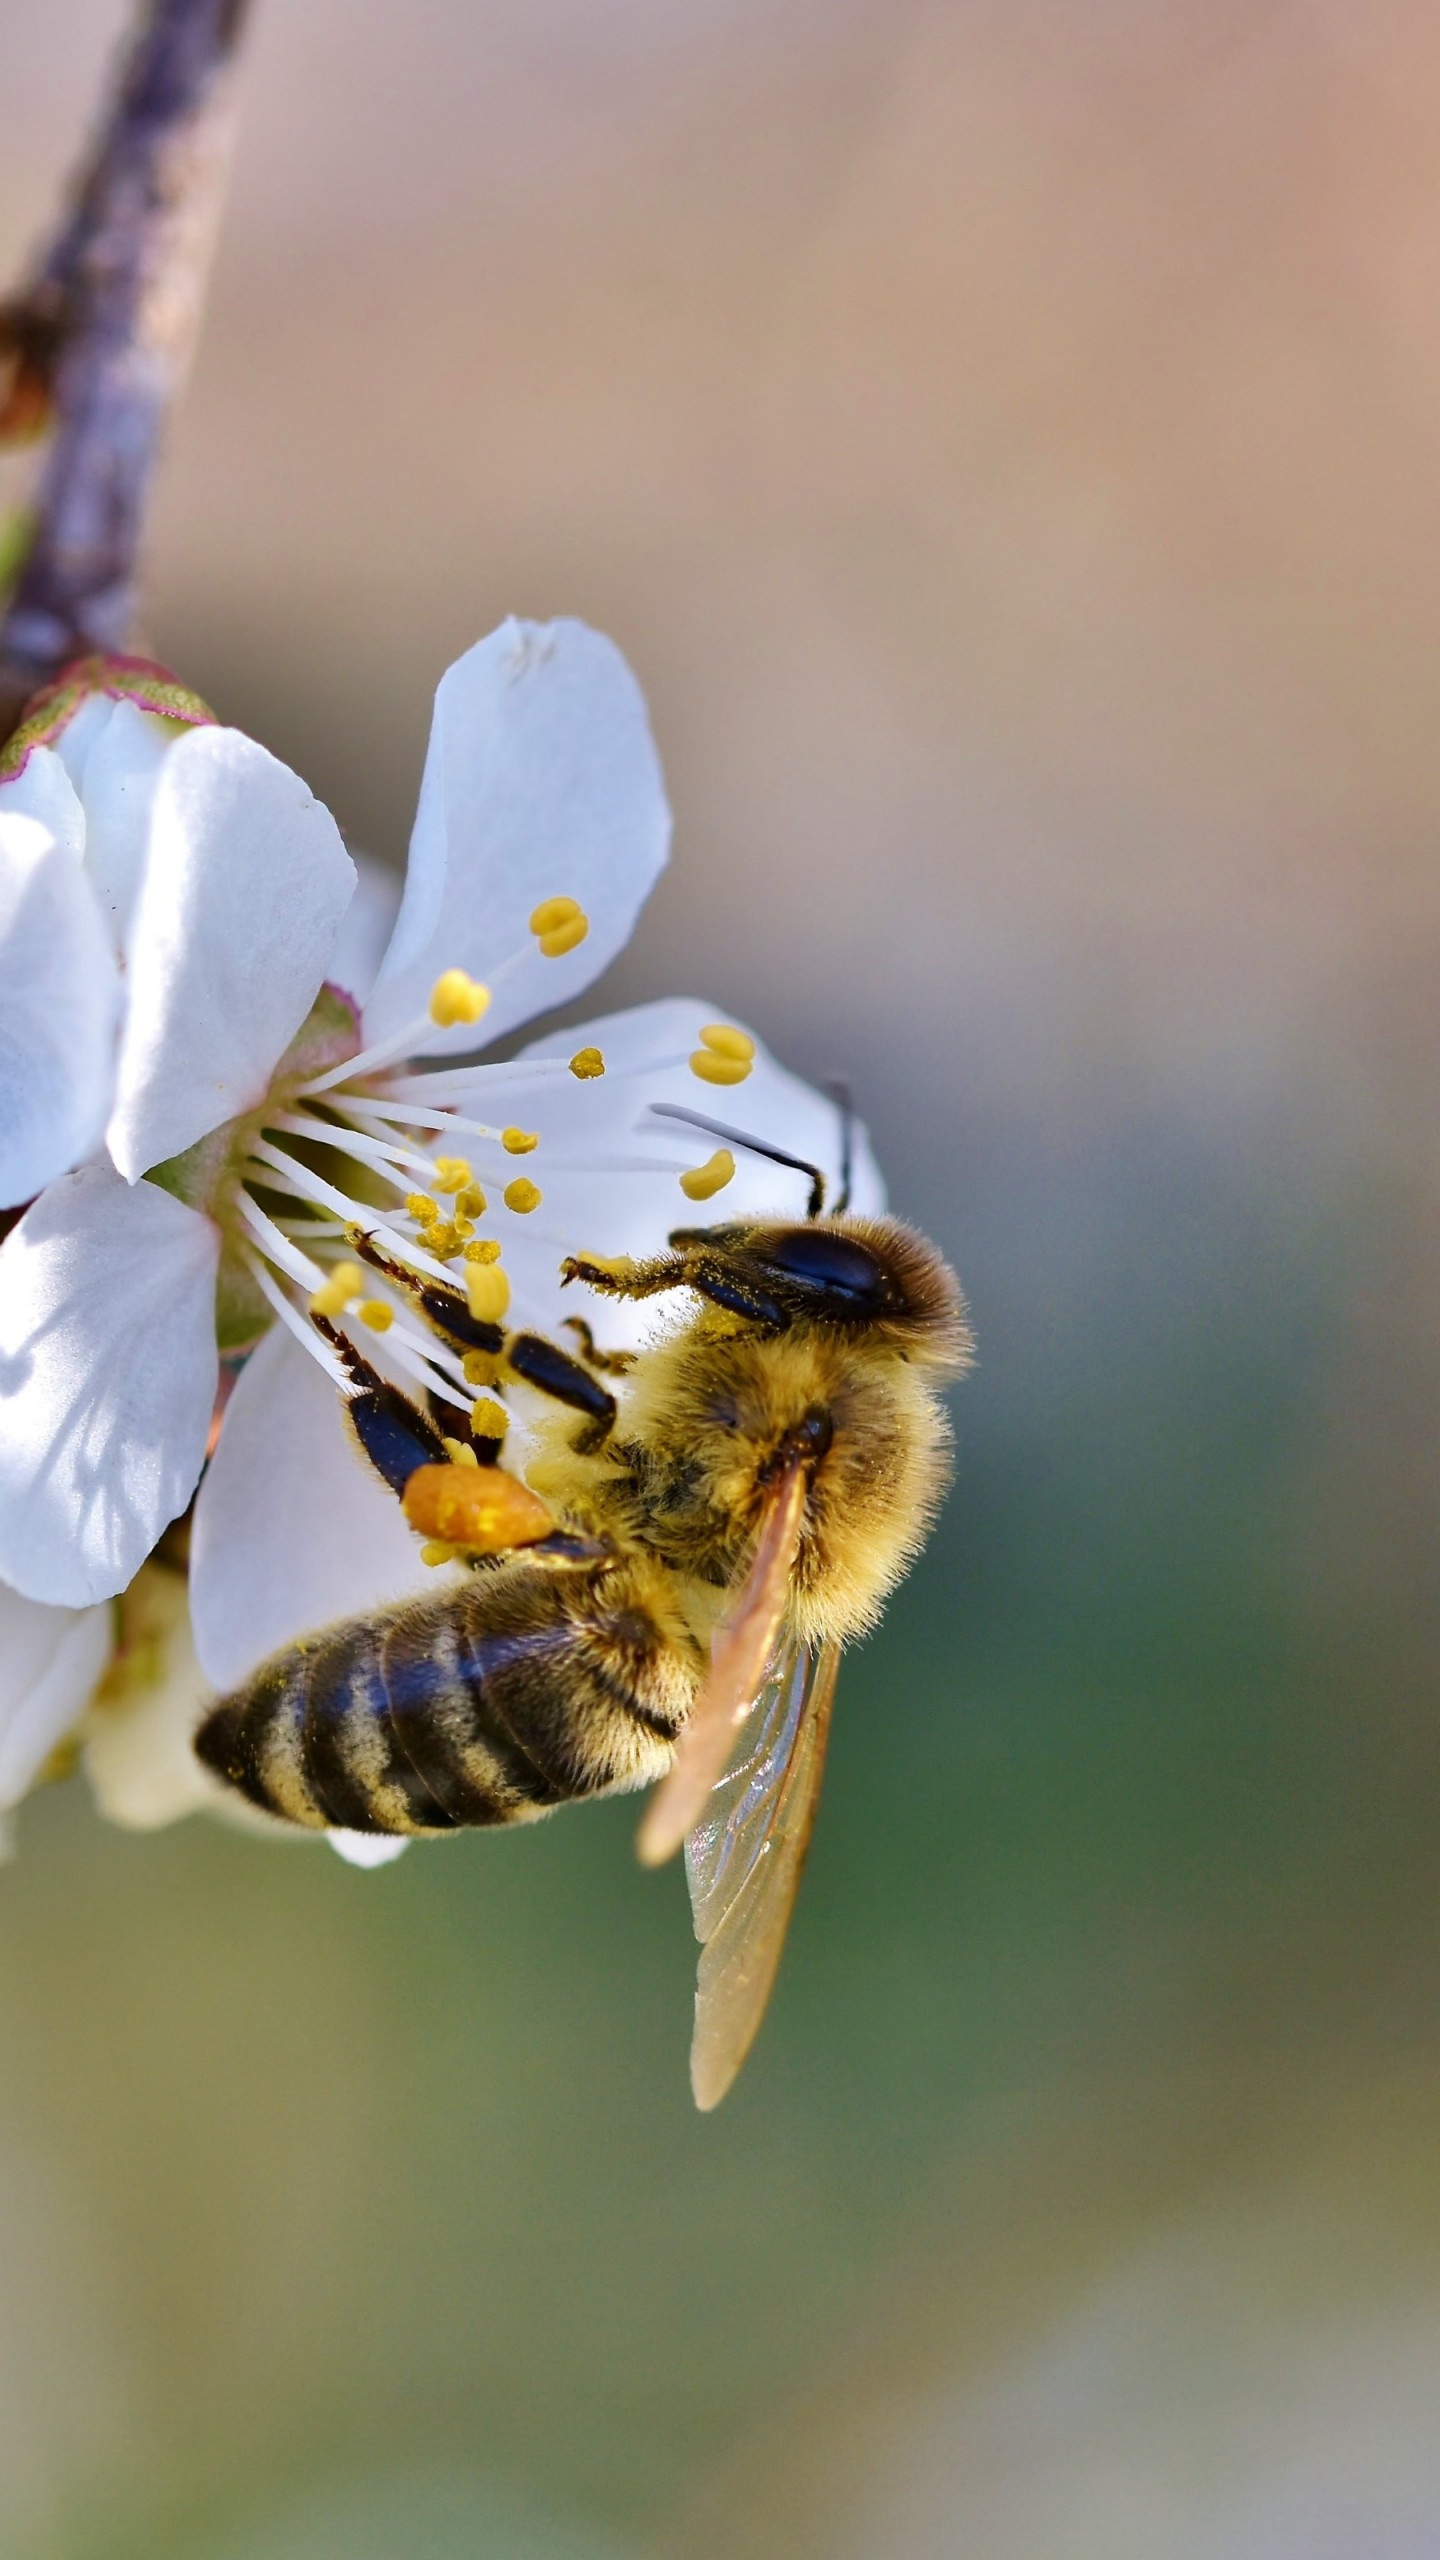 Spring, bee, blossoms, flower wallpaper 1440x2560